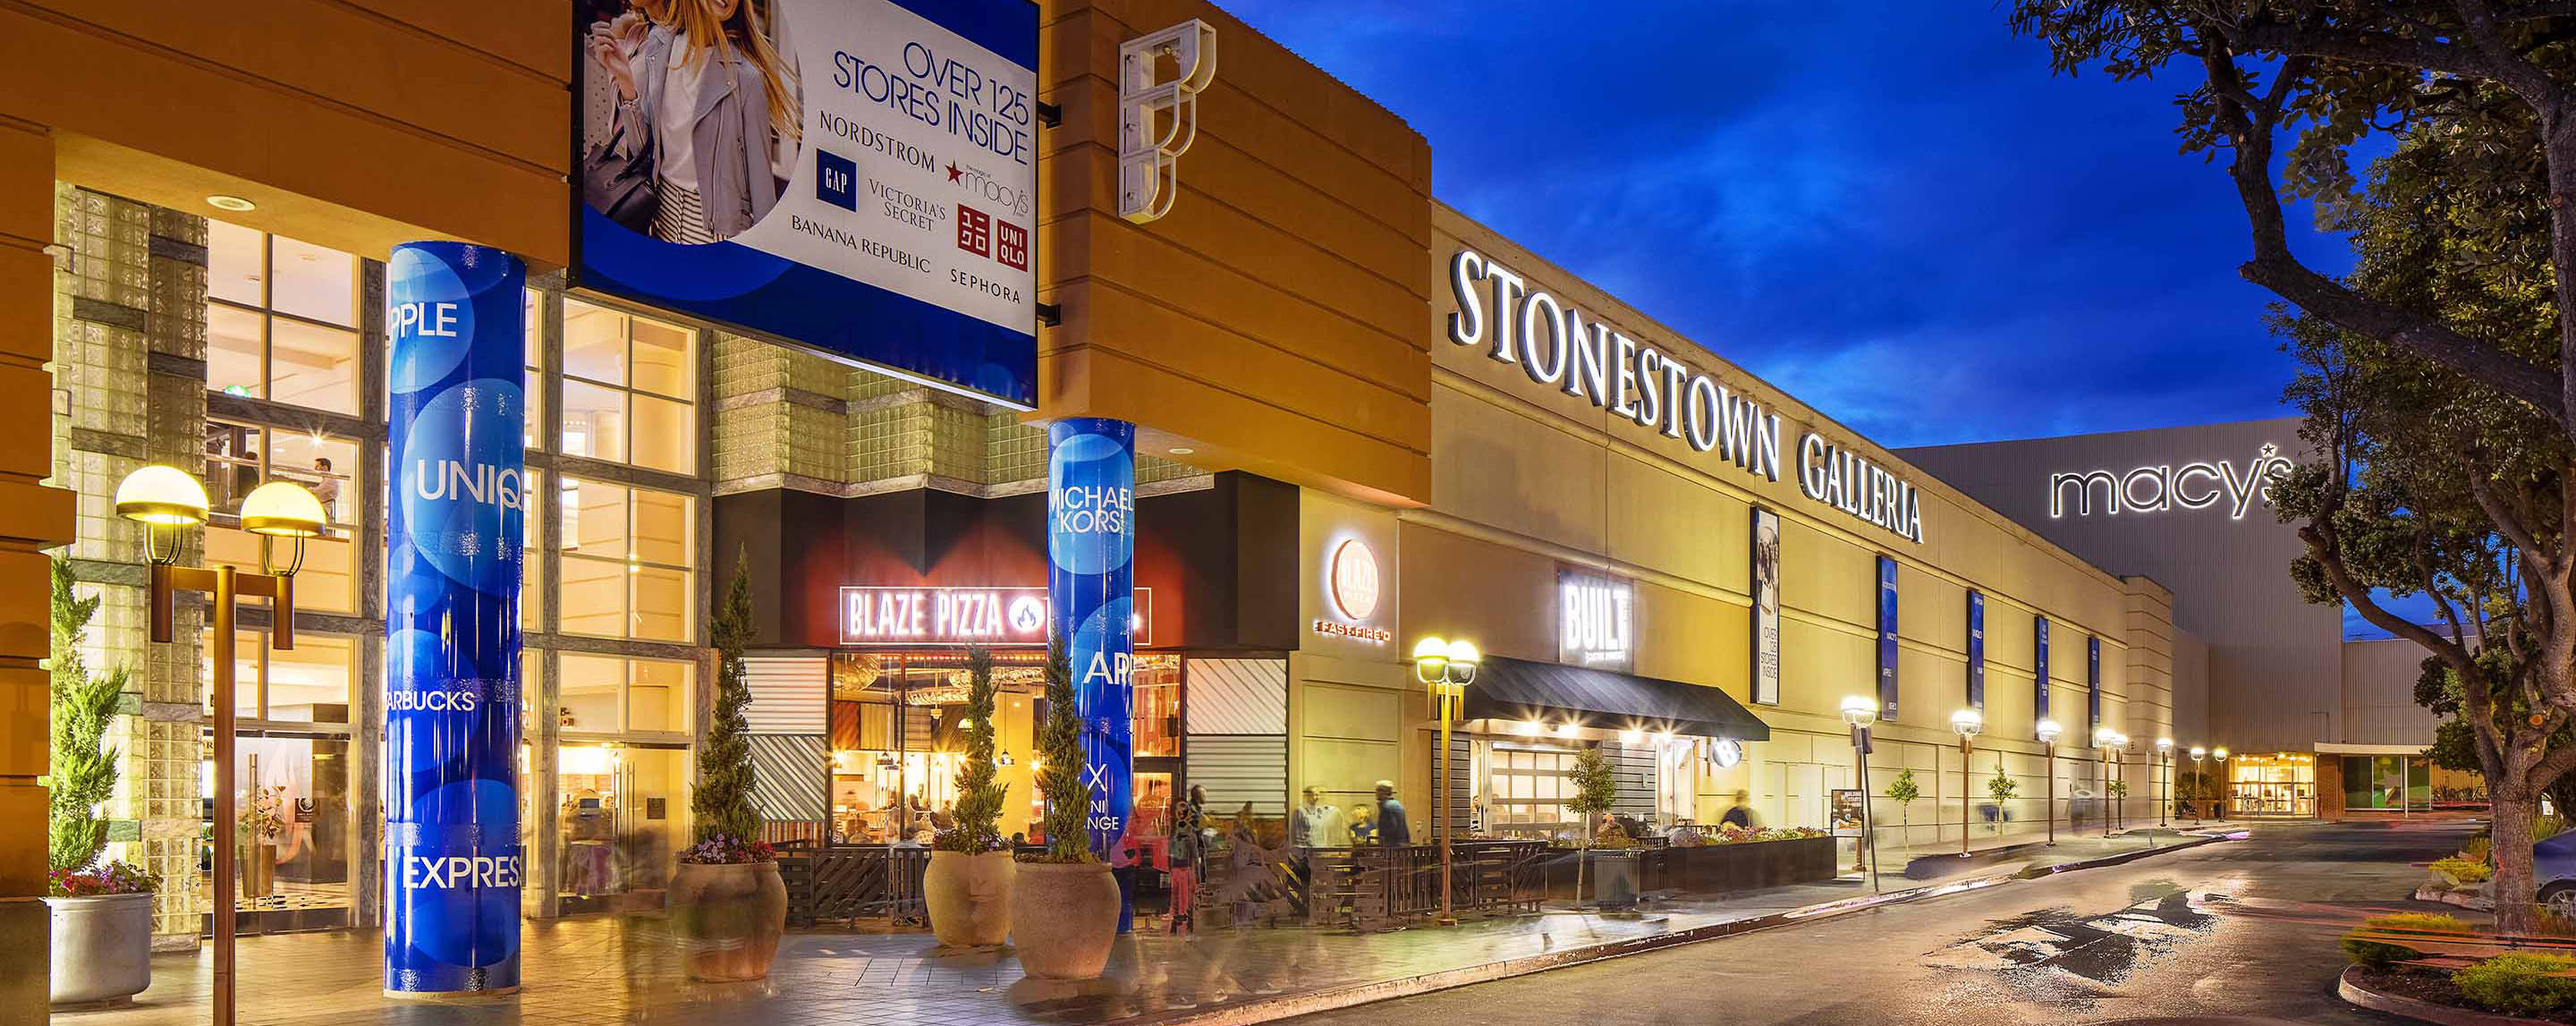 The exterior entrances of Stonestown Galleria is brightly lit at night.